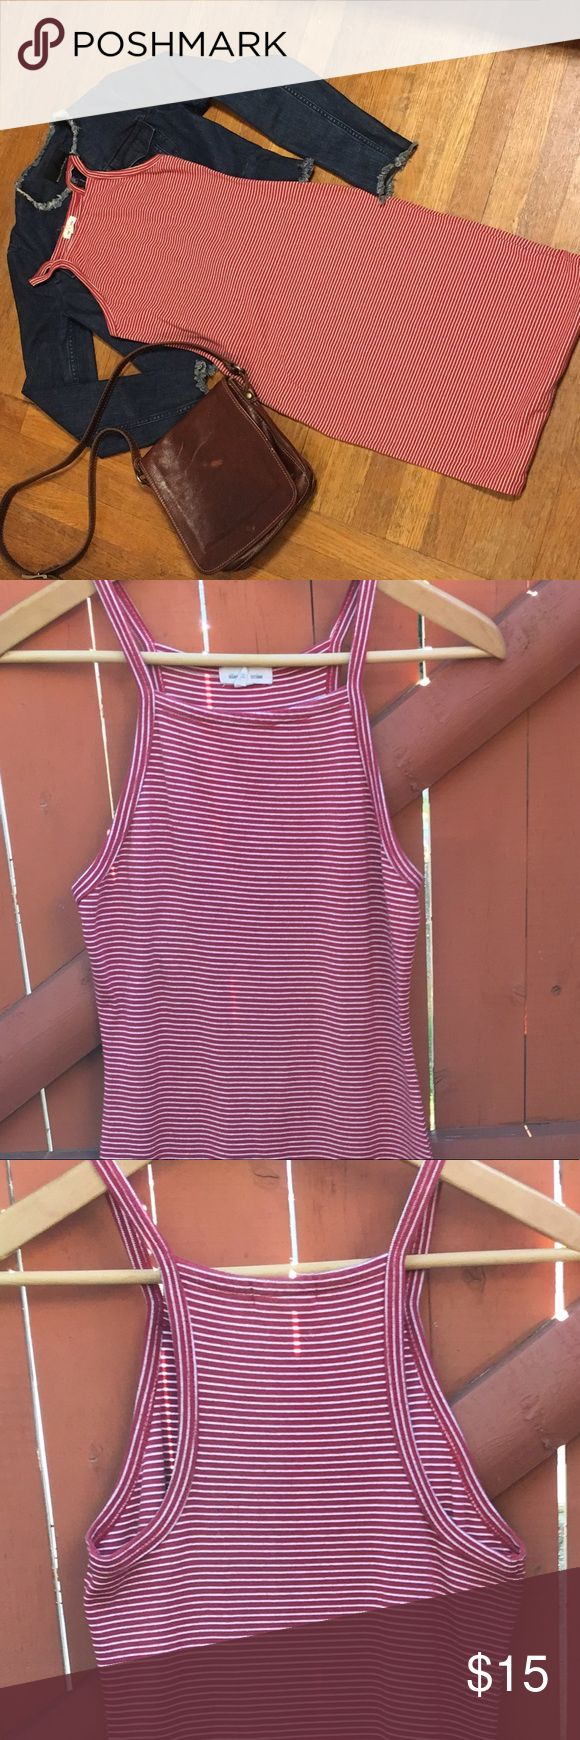 Urban Outfitters Striped Tank Midi Dress -EUC This dress is fitted, with red and white striped. Pretty versatile and great for early fall   Try it out with some denim and camel boots. Or sandals and a beach bag! 😉 Urban Outfitters Dresses Midi